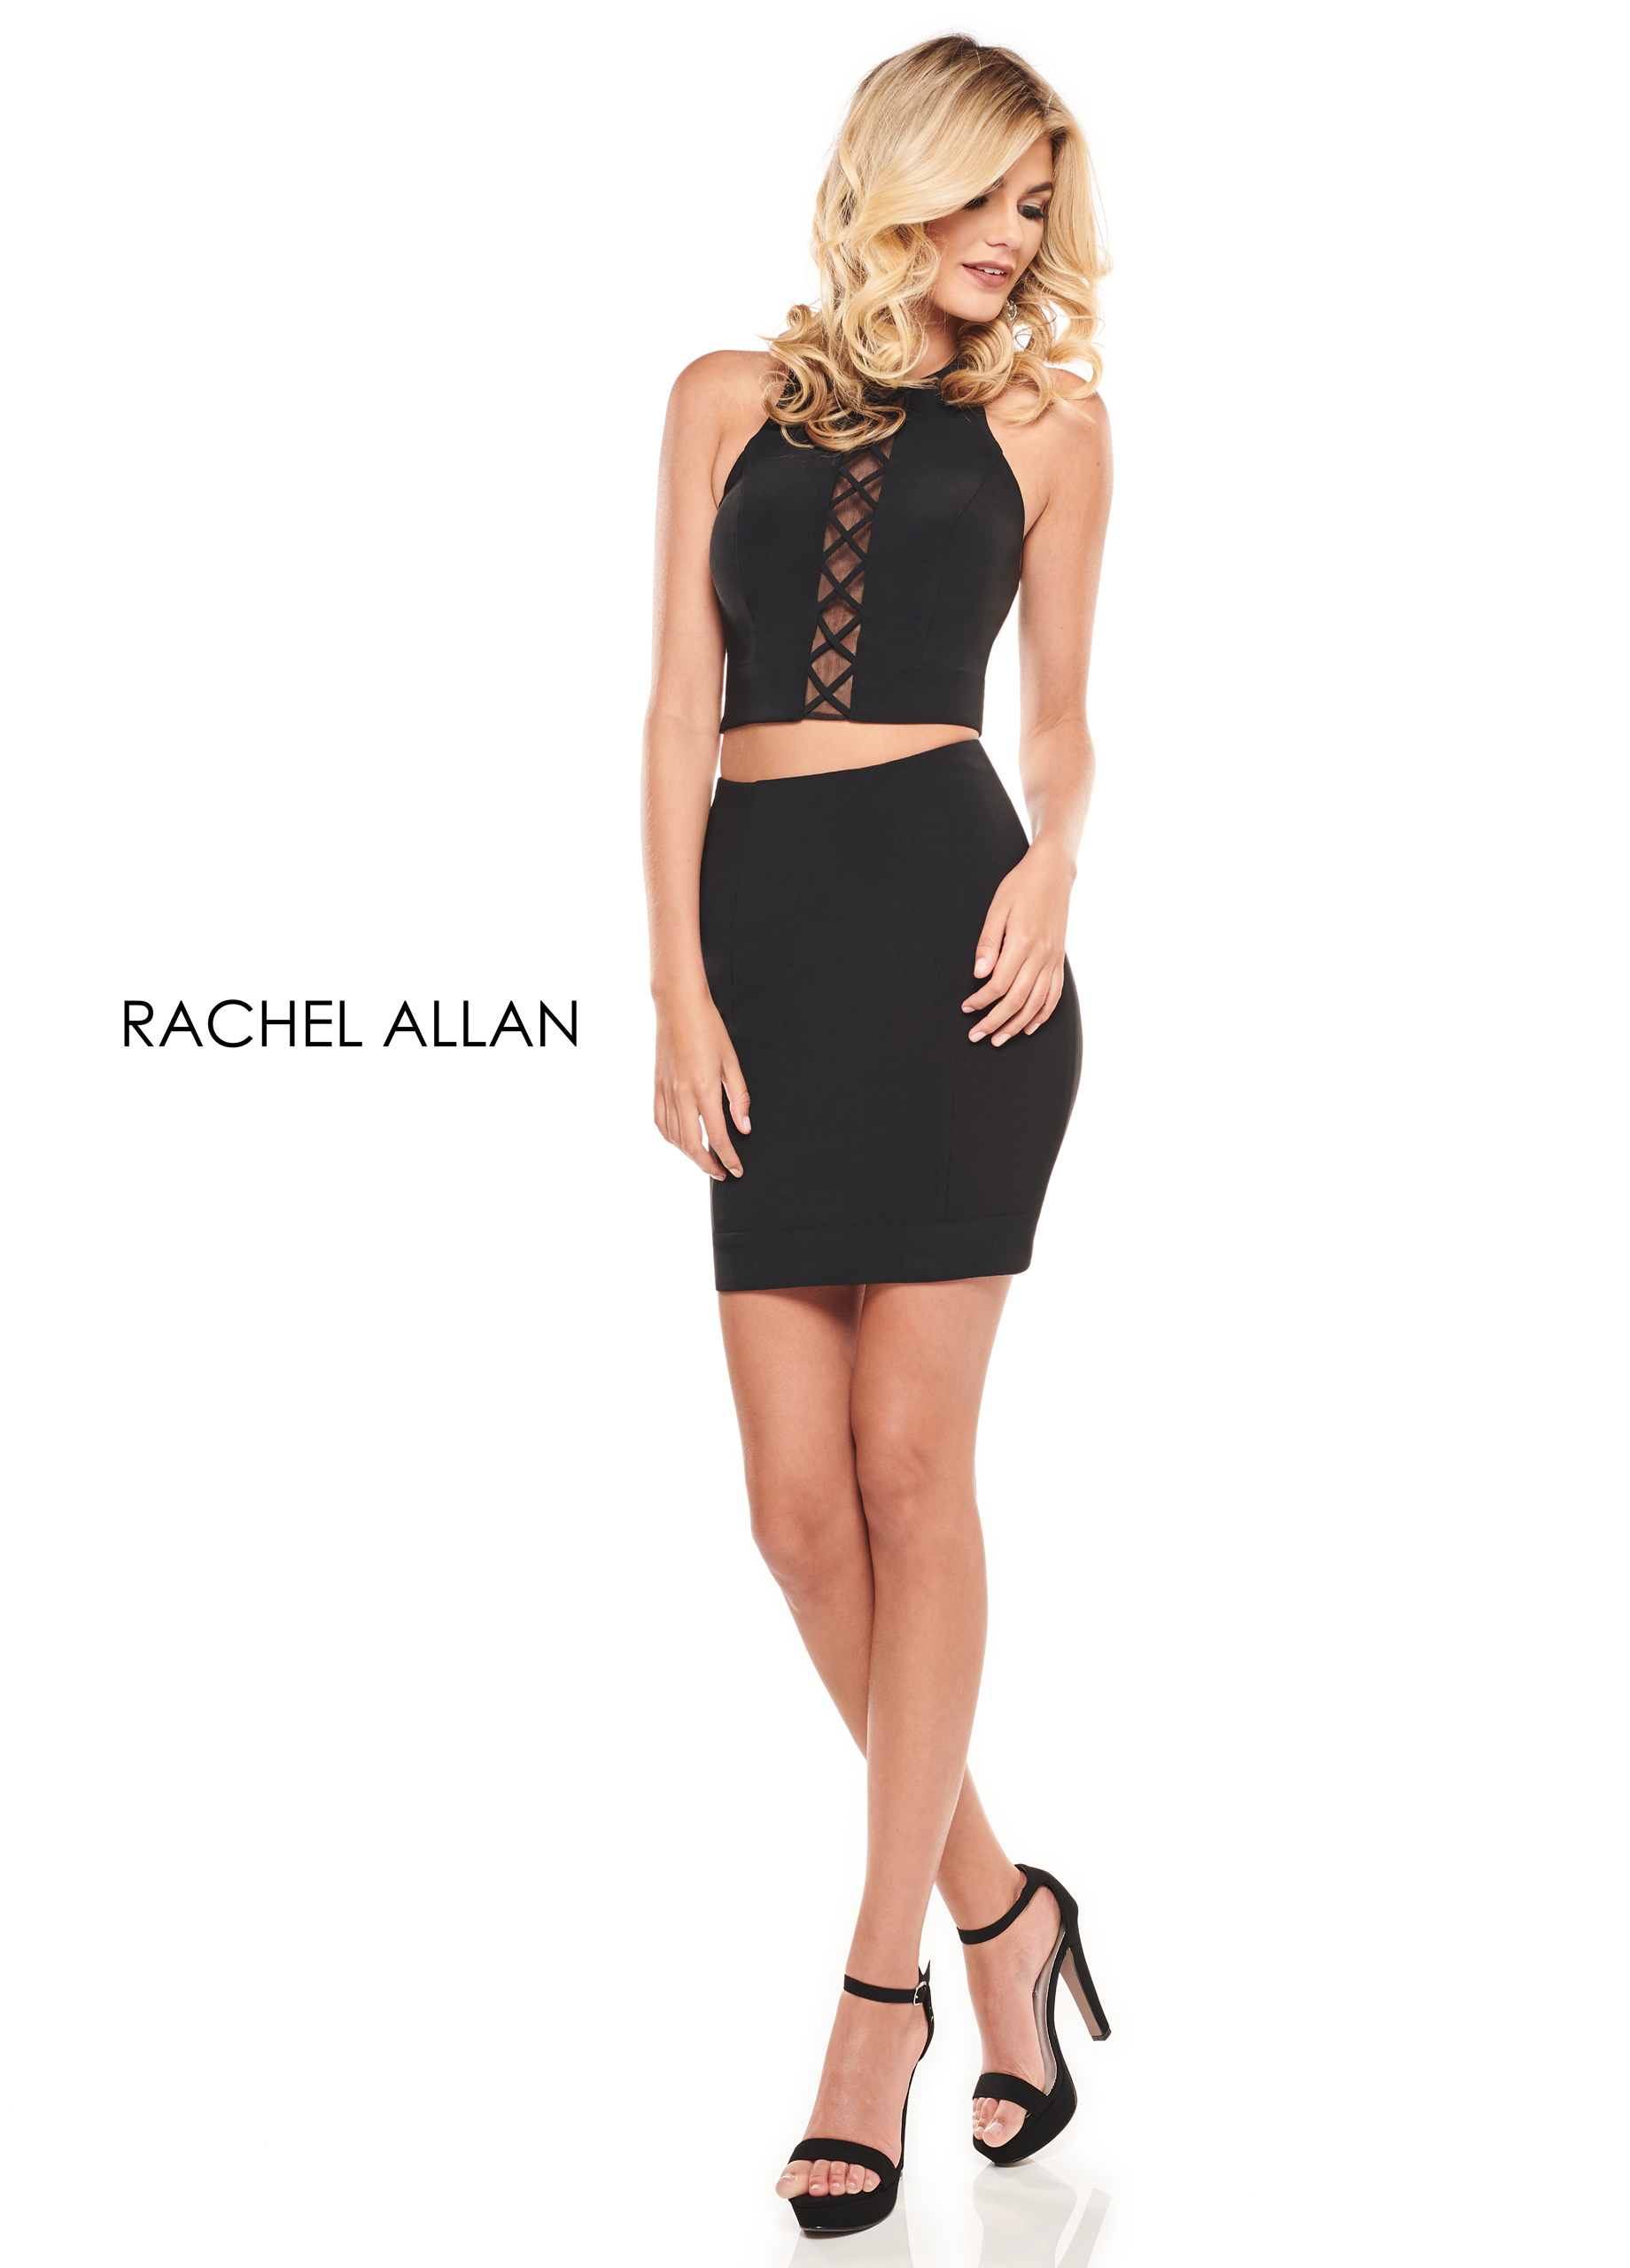 Scoop Neck Two-Piece Cocktail Dresses in Black Color